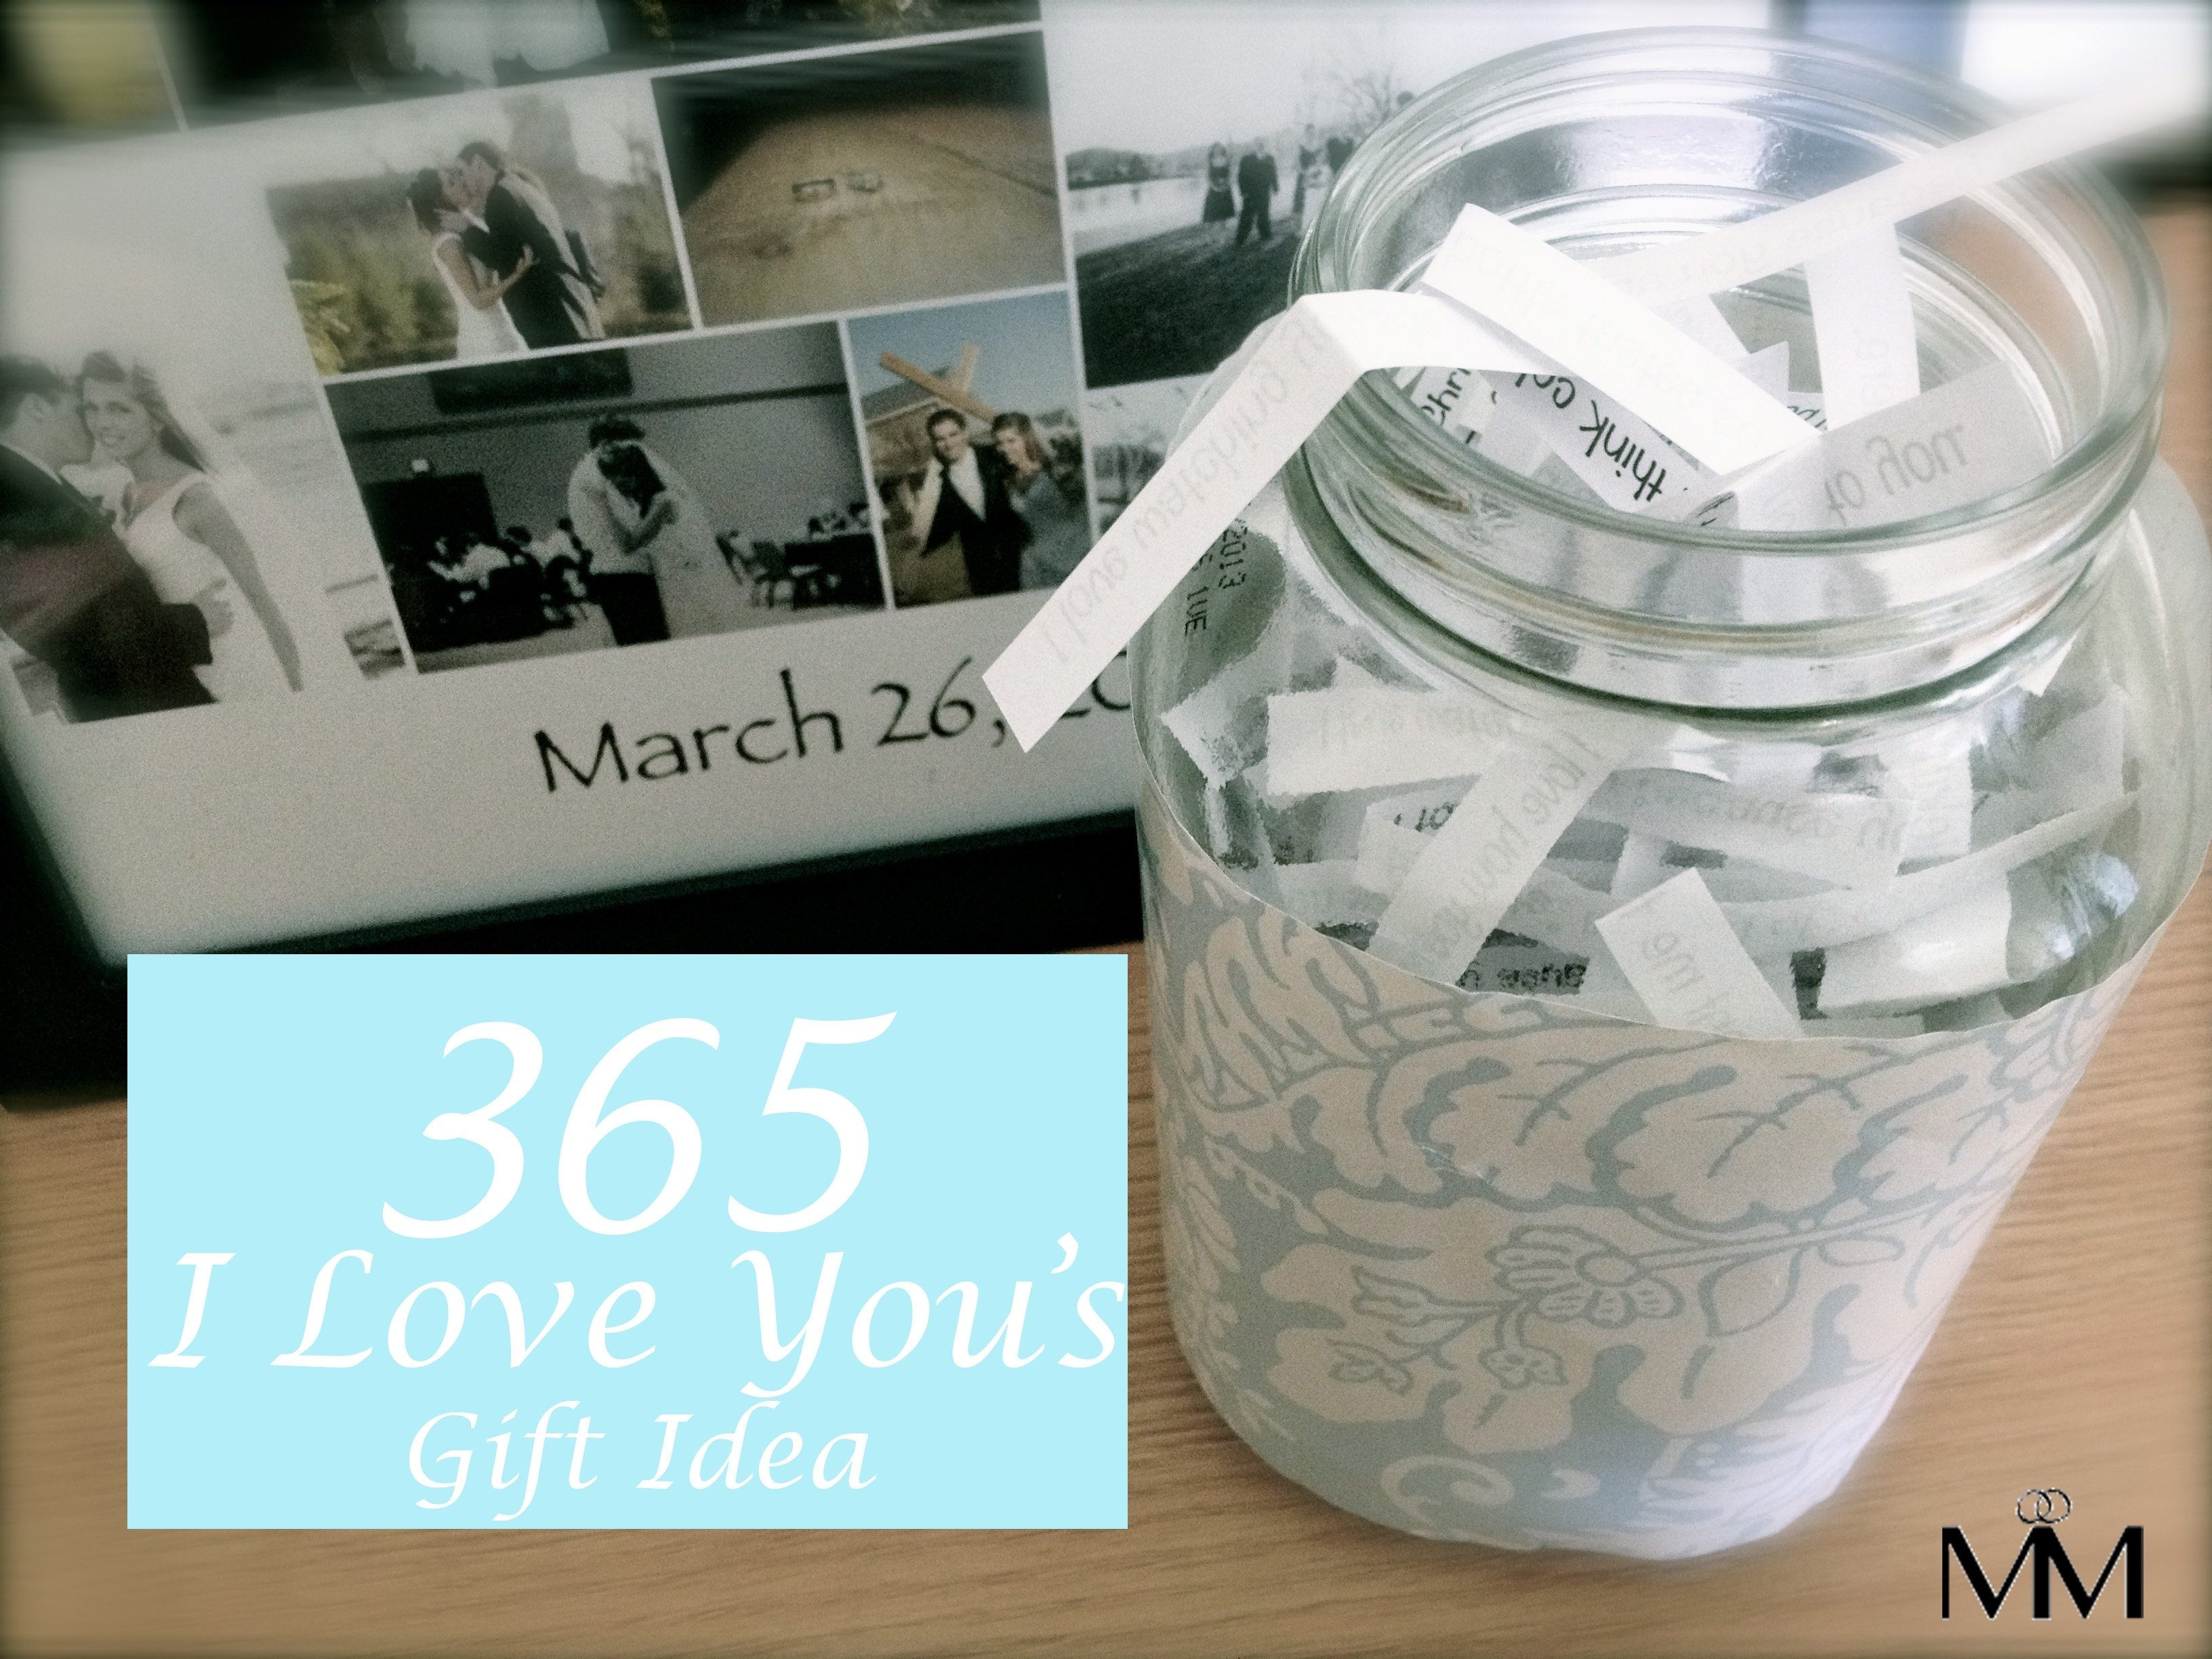 10 Stylish Great Anniversary Gift Ideas For Her diy 2 year anniversary gift idea the 365 reasons why i love you 2 2020